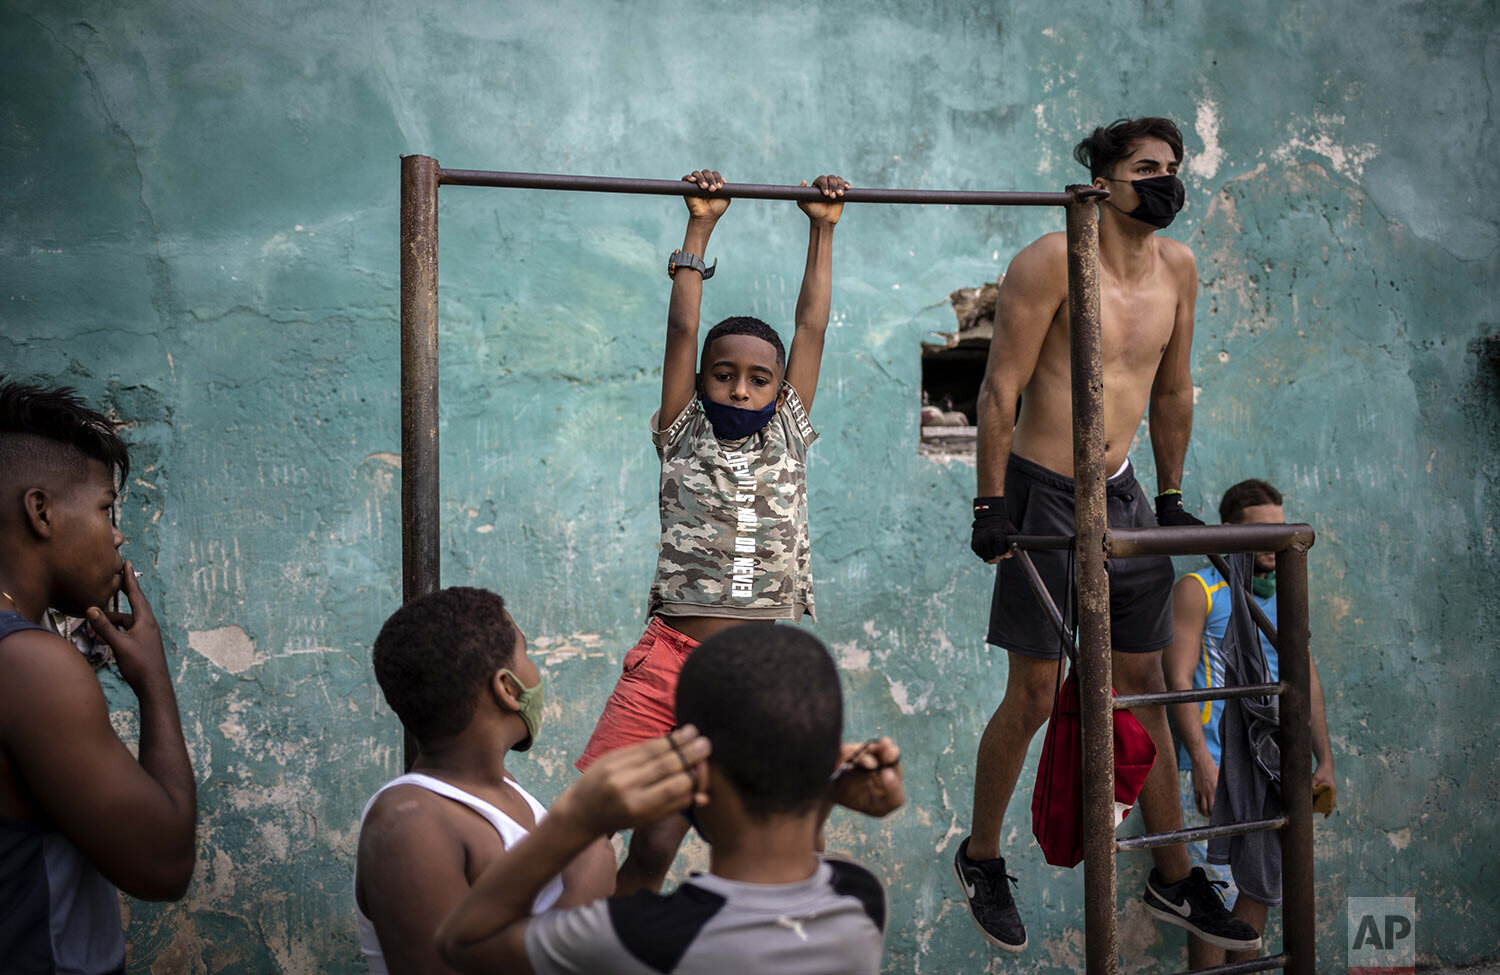 Youths exercise at a street gym in Havana, Cuba, Monday, Dec. 21, 2020, during the COVID-19 pandemic. (AP Photo/Ramon Espinosa)